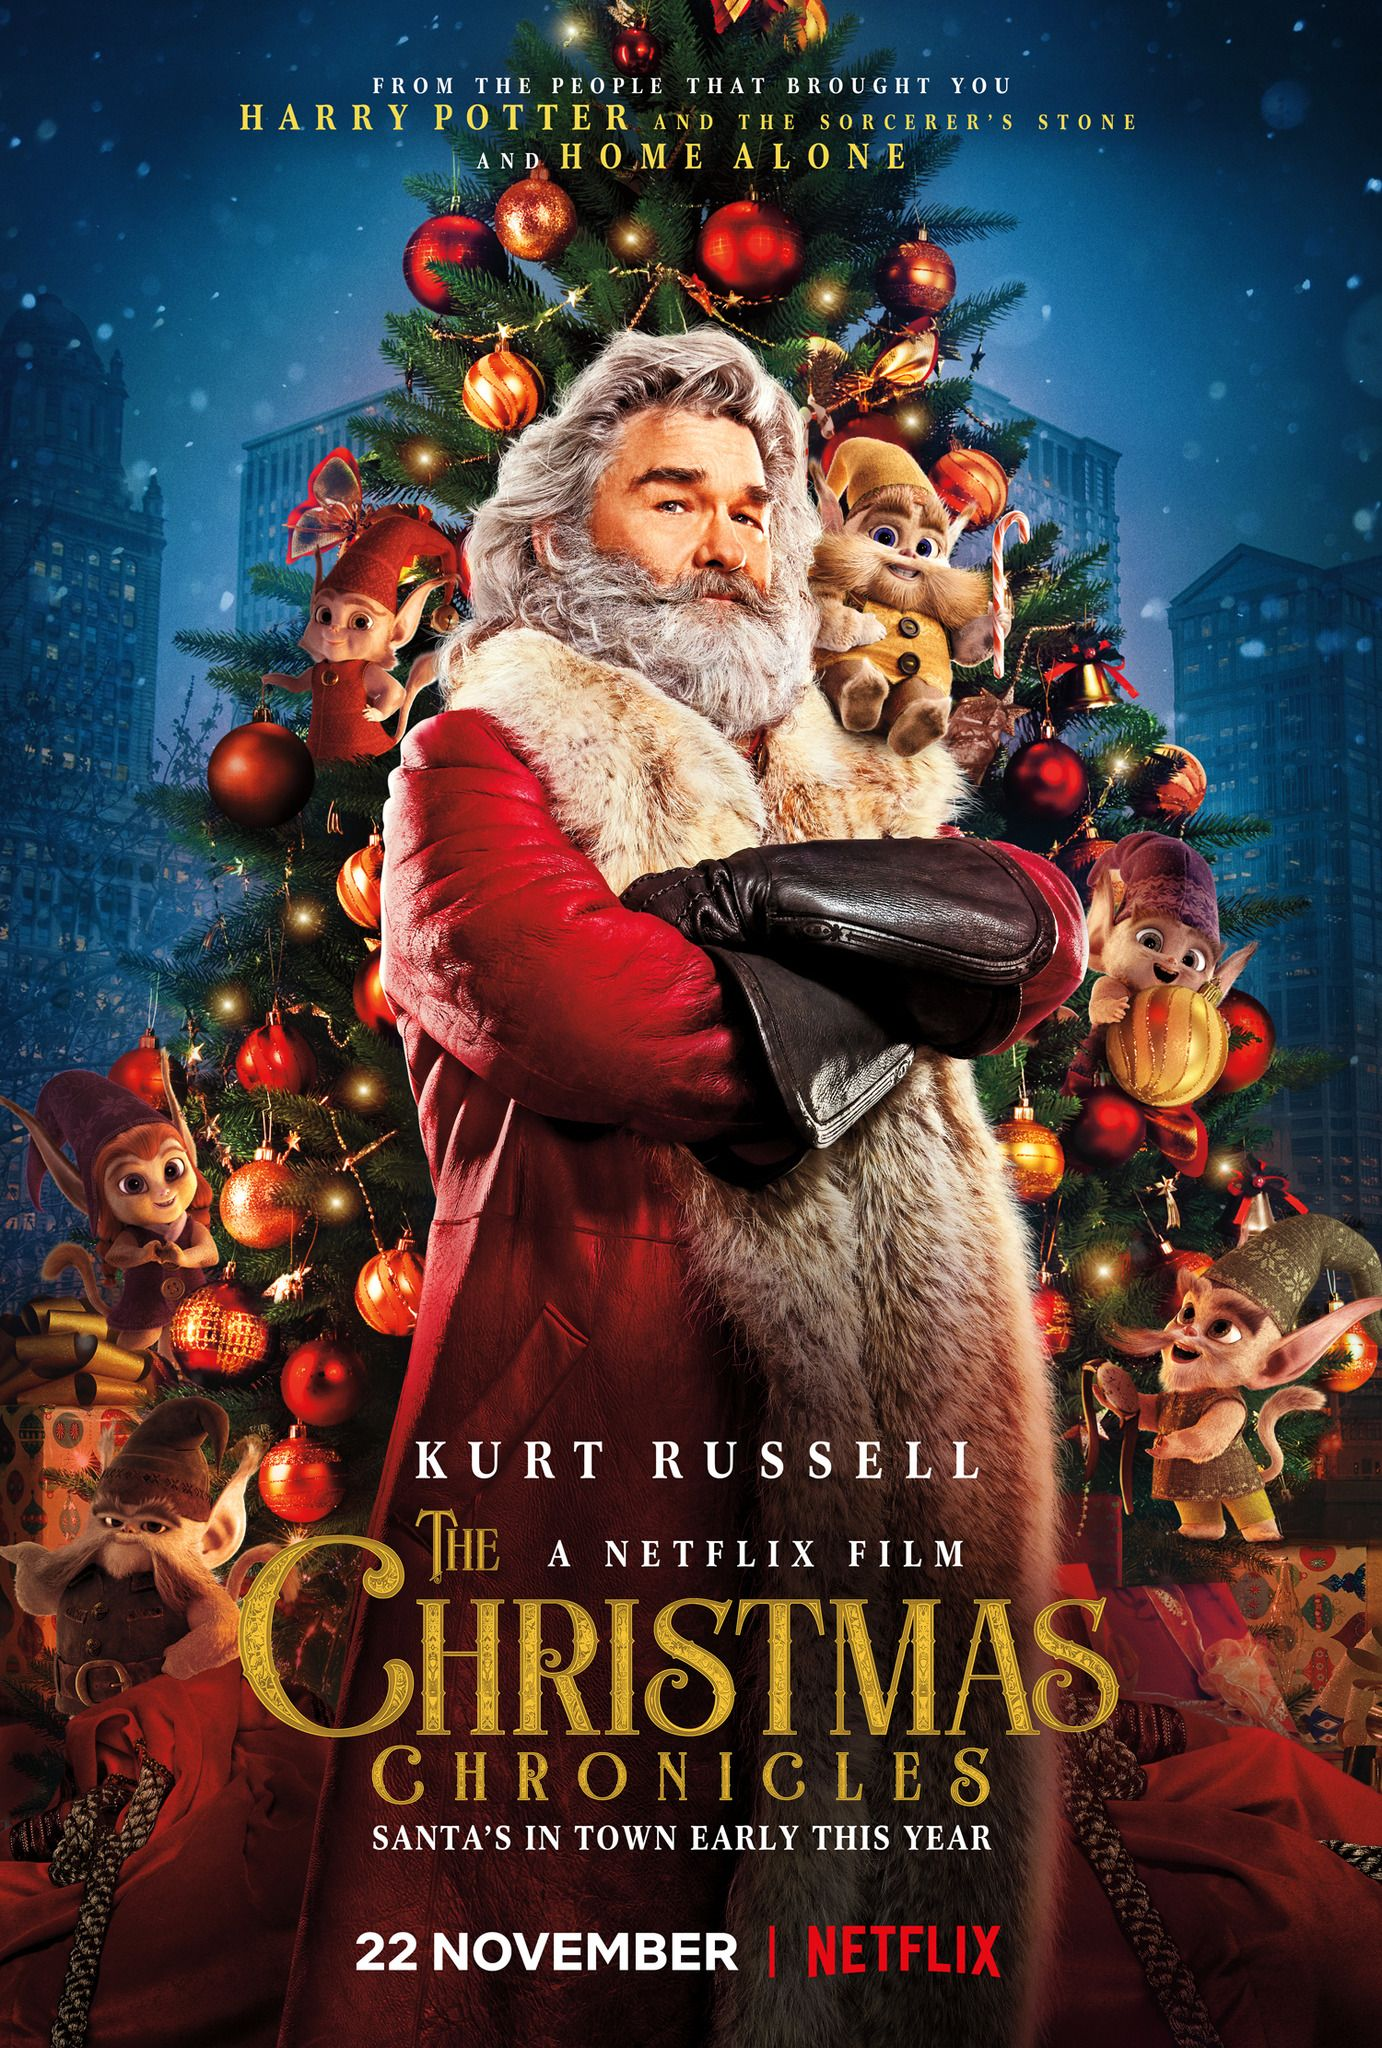 107 The Christmas Chronicles Dec 23rd Best Christmas Movies Christmas Movies Netflix Original Movies